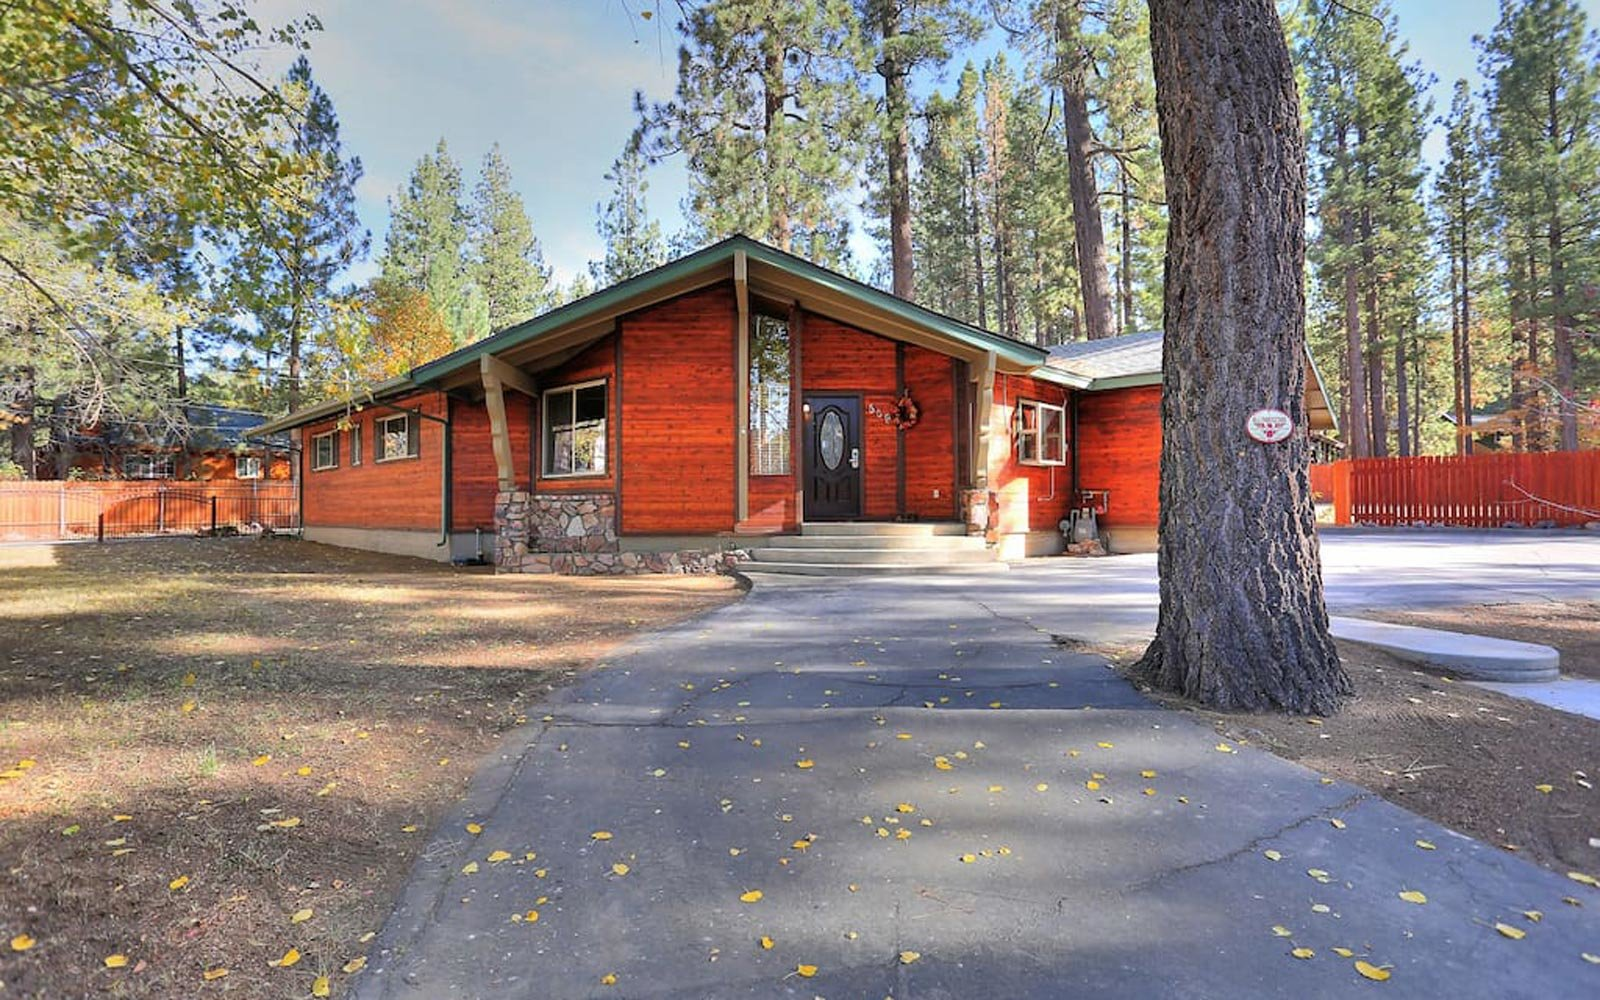 lake cabins wikimedia big wiki calif bear file dawson s